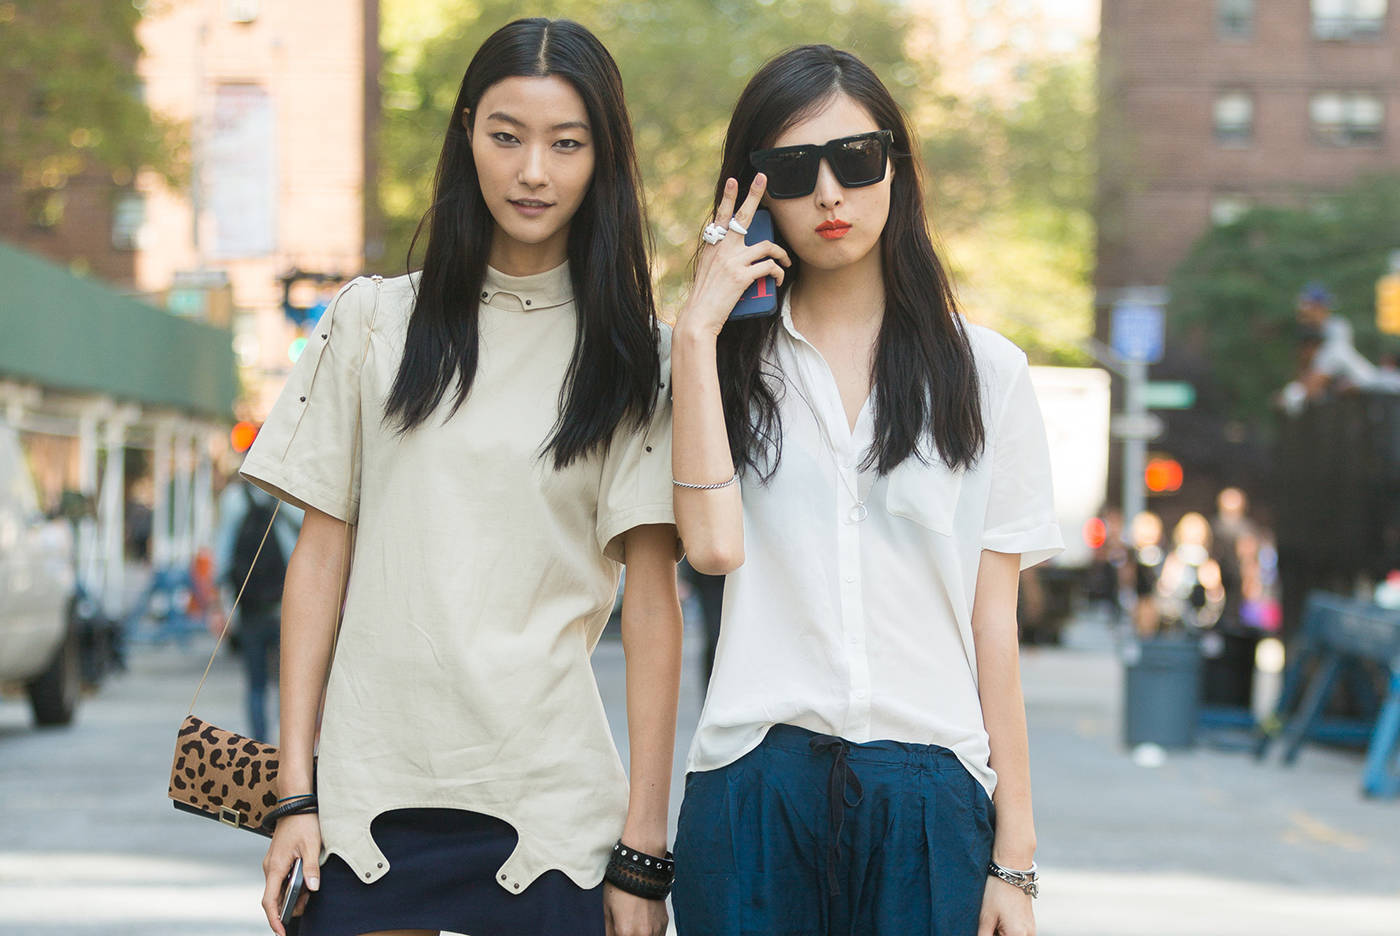 Korean models JiHye Park and Sung Hee Kim at New York Fashion Week, Getty Images.